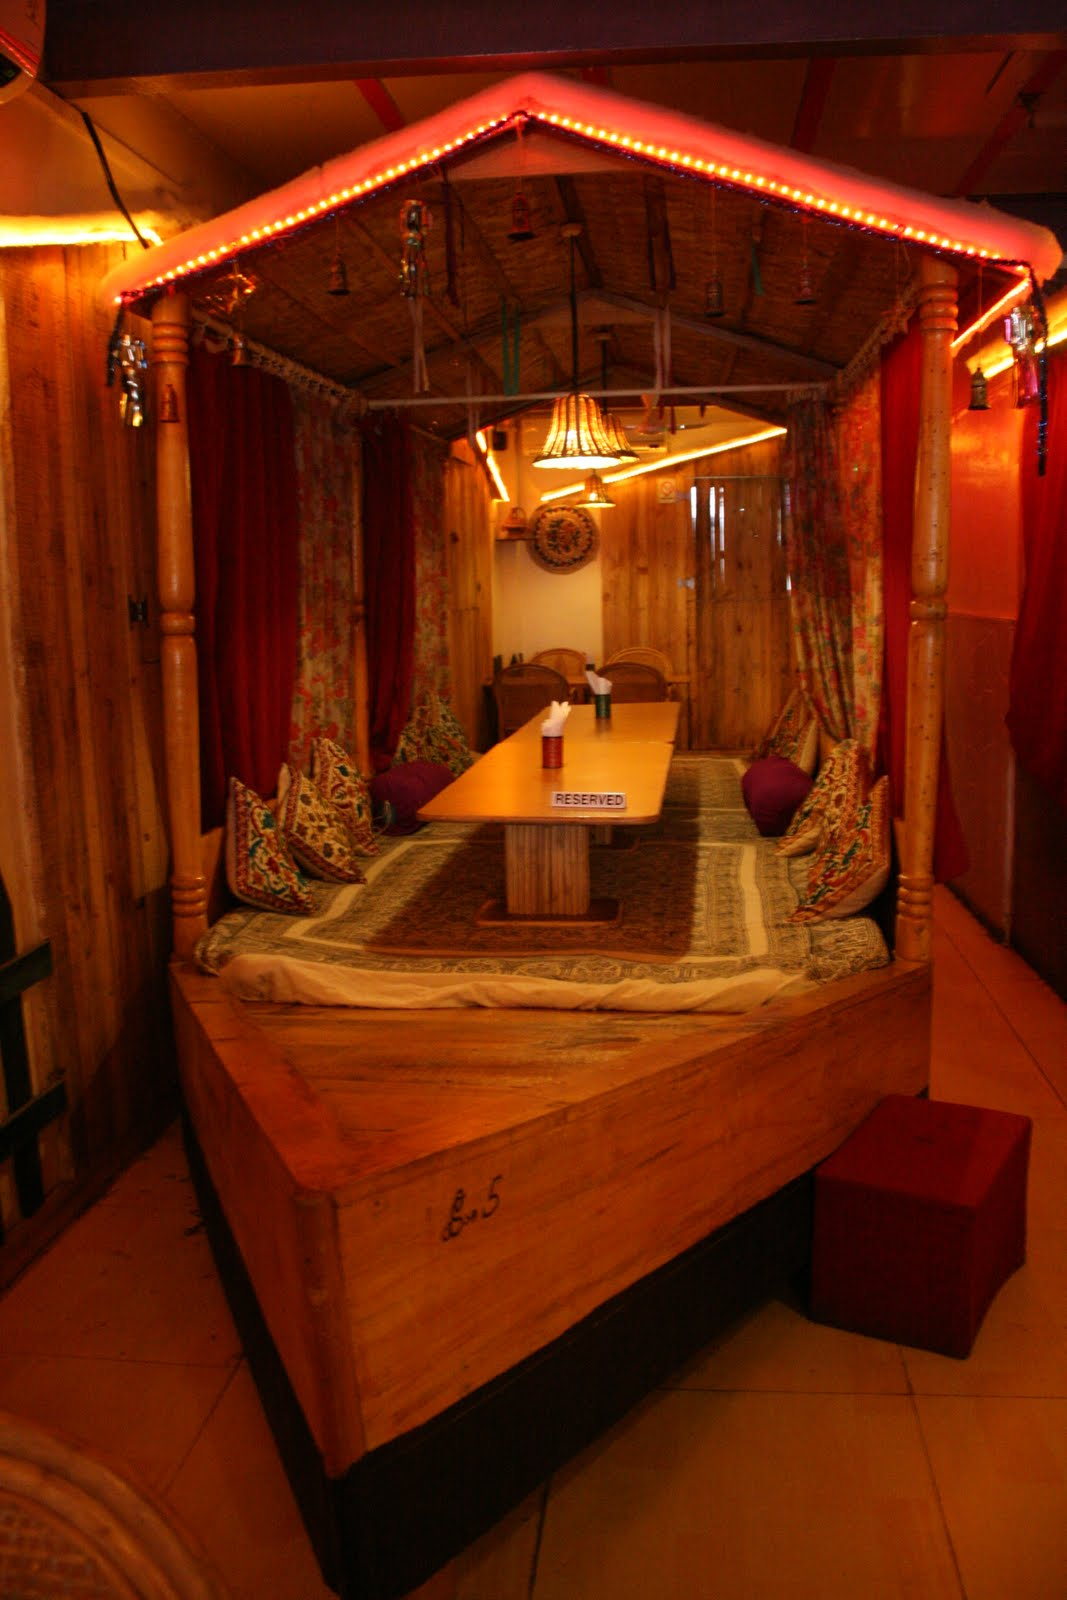 kitchen chef decor small design traveller stories: unusual restaurants in mumbai